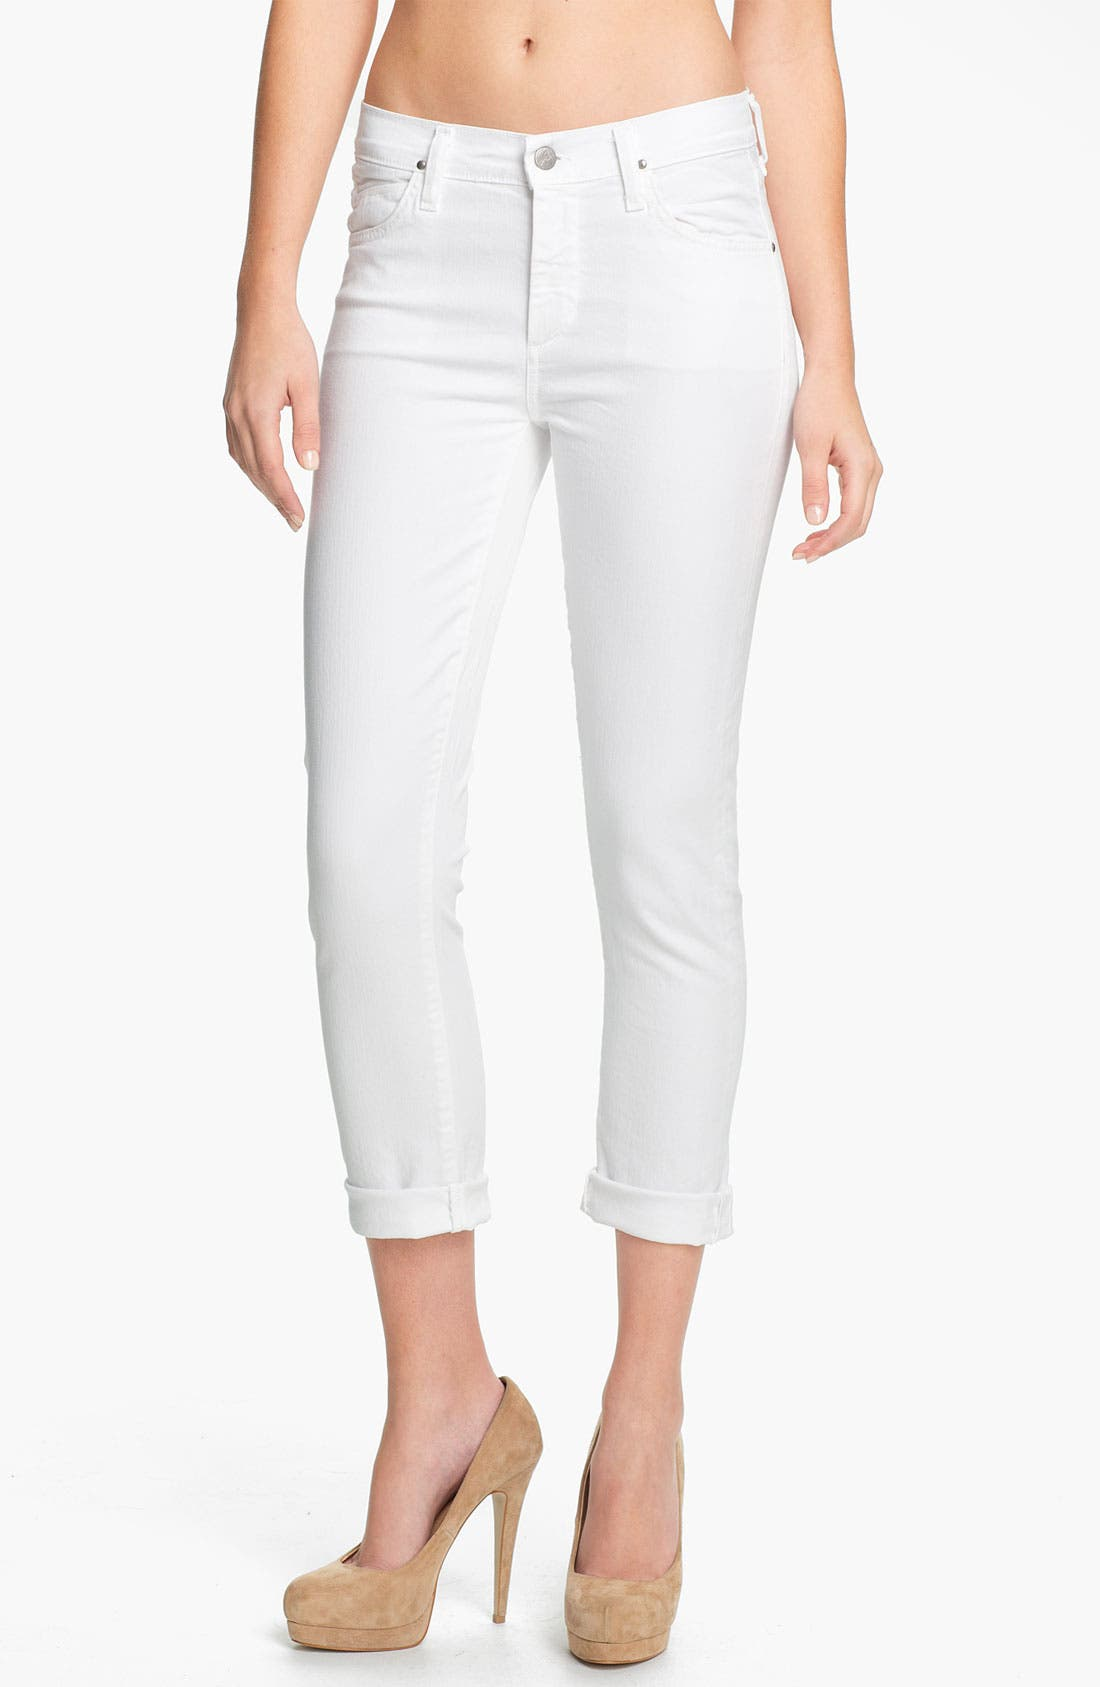 Alternate Image 1 Selected - Citizens of Humanity 'Carlton' High-Waist Slim Straight Leg Ankle Jeans (Santorini)